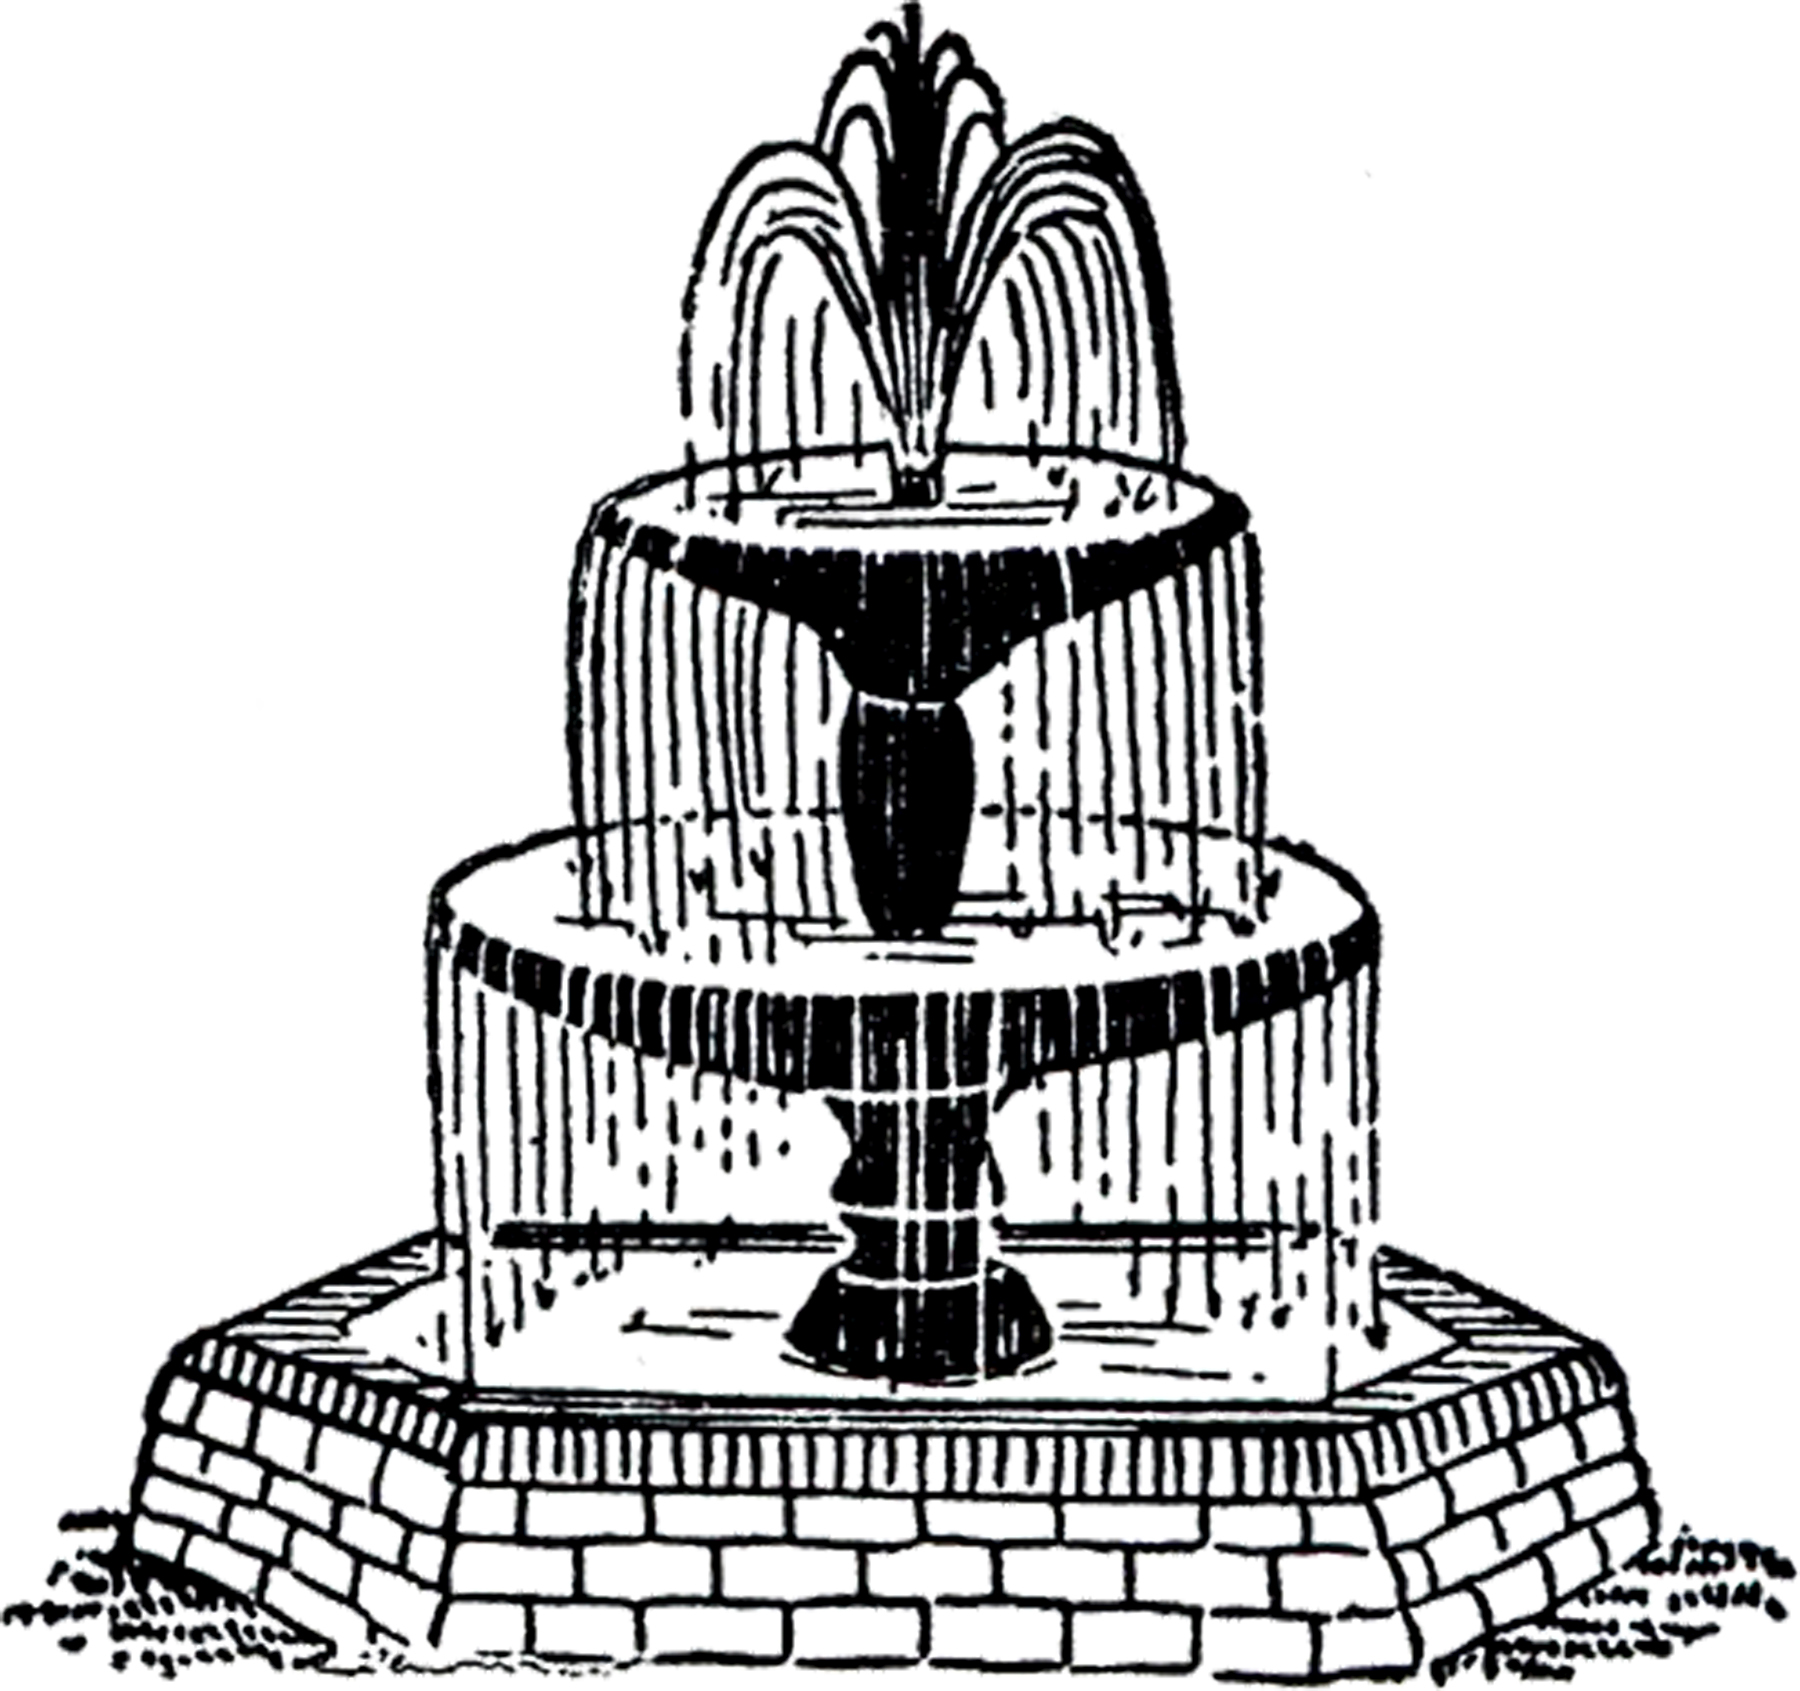 free vintage fountain clip art the graphics fairy rh thegraphicsfairy com fountain clip art black and white fountain pen clipart